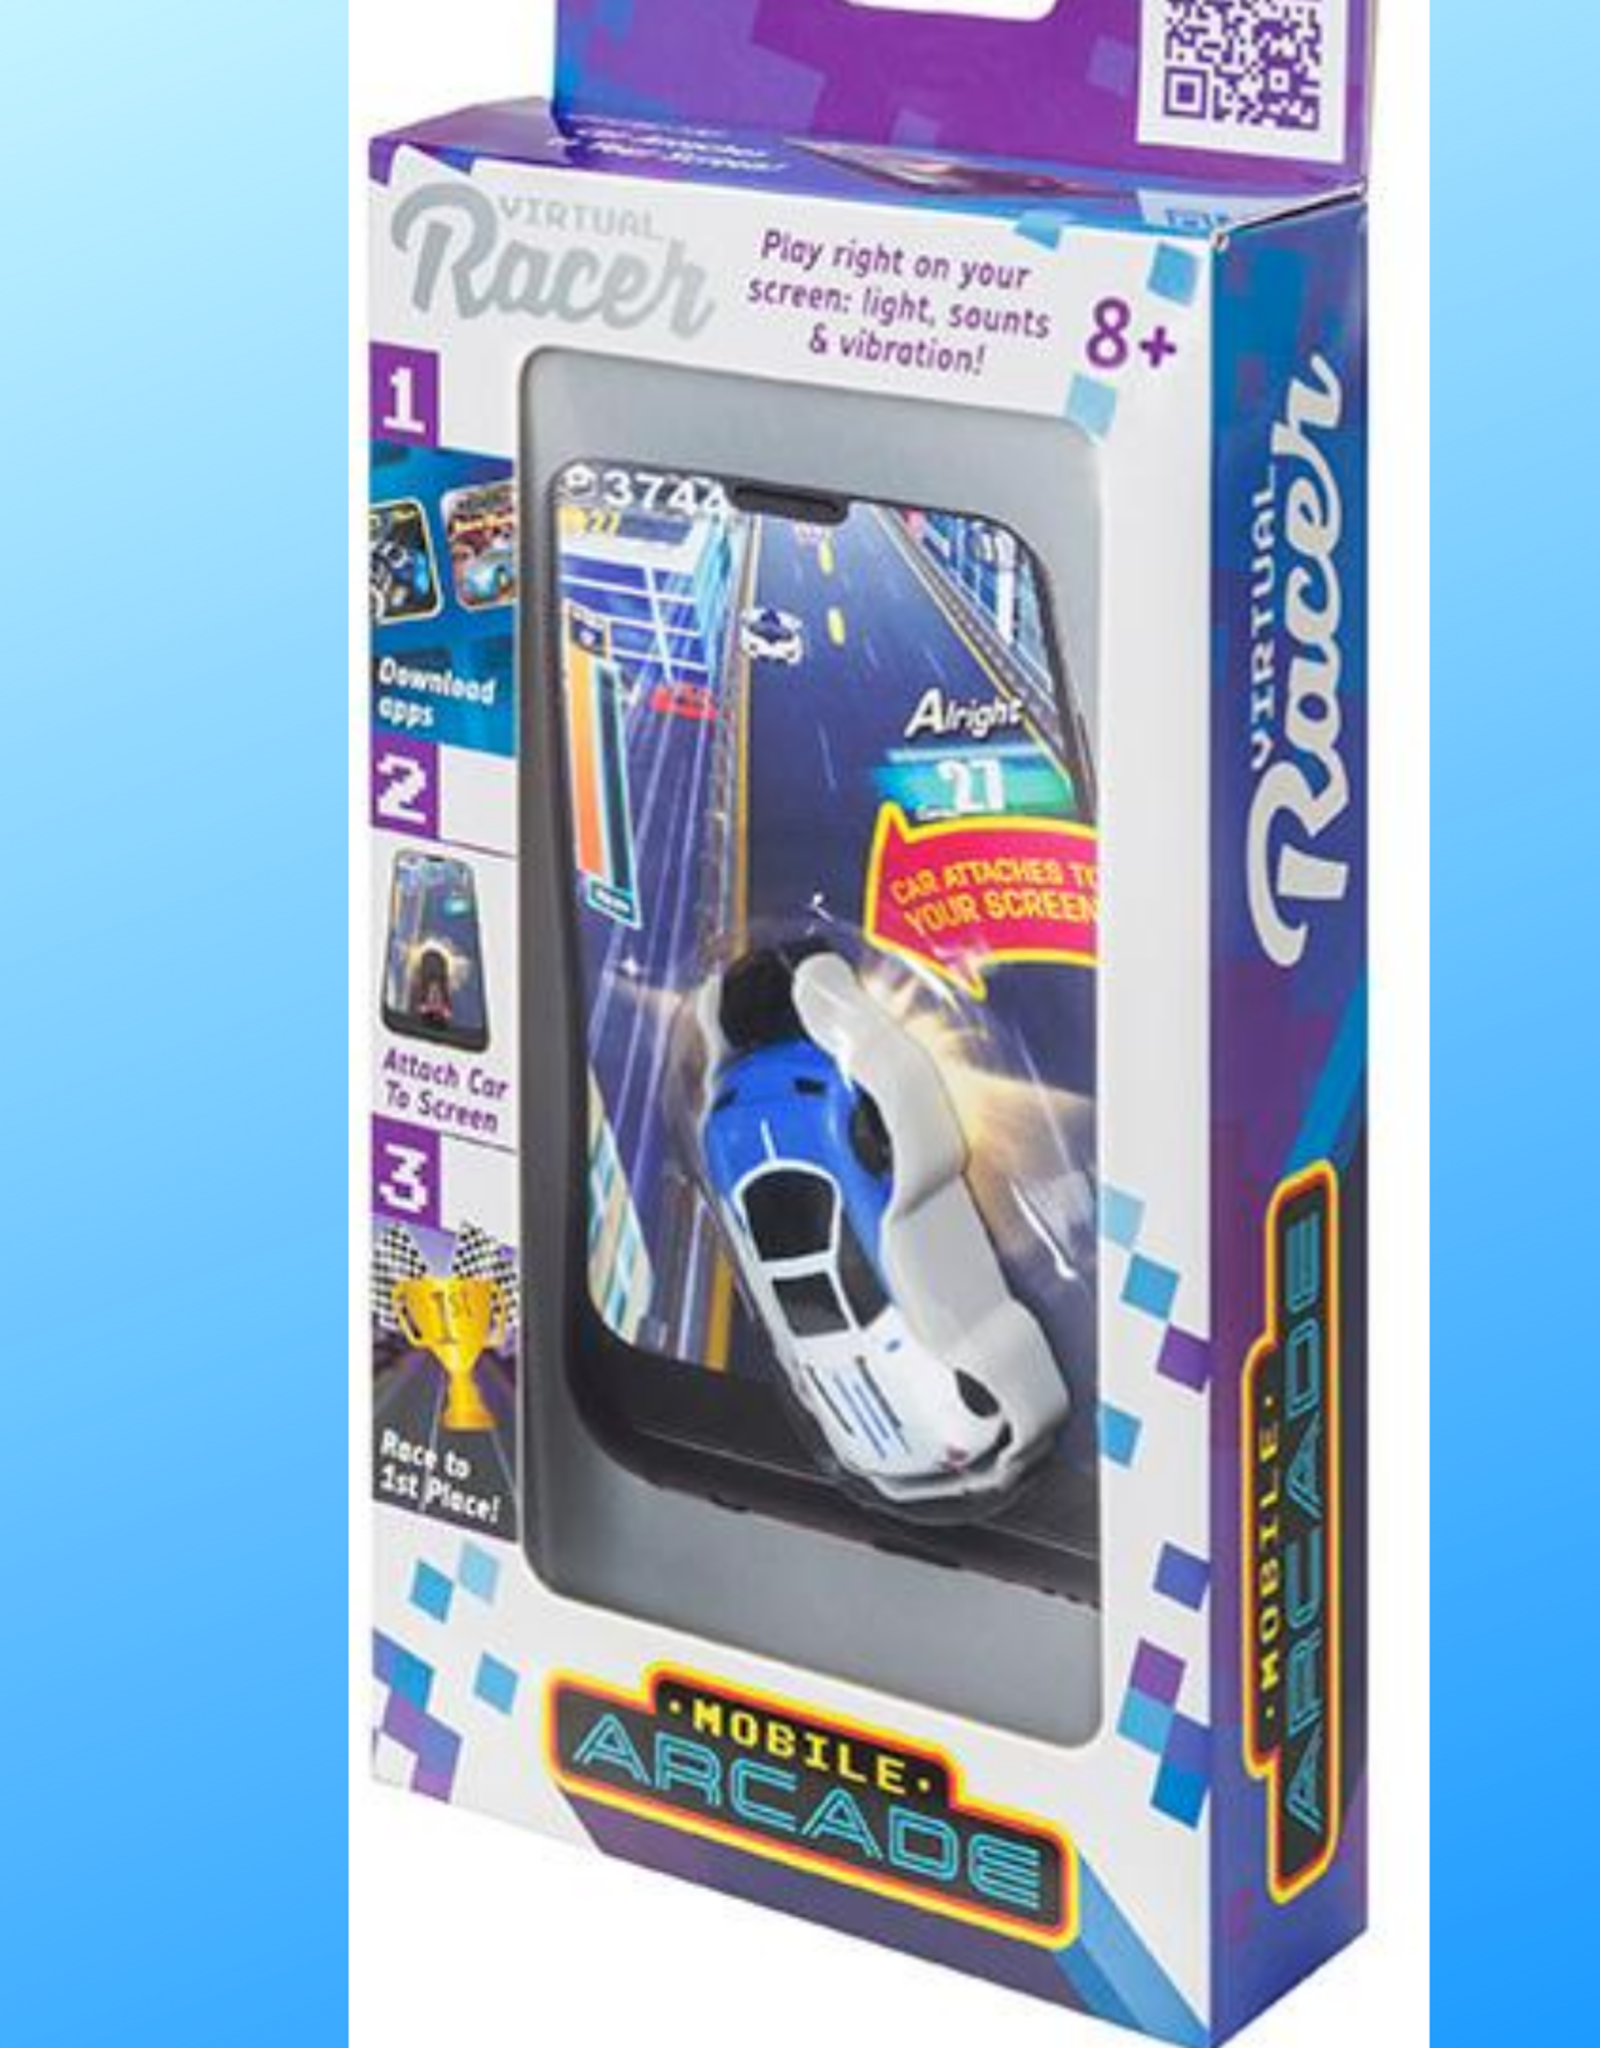 VIRTUAL RACING CAR ARCADE